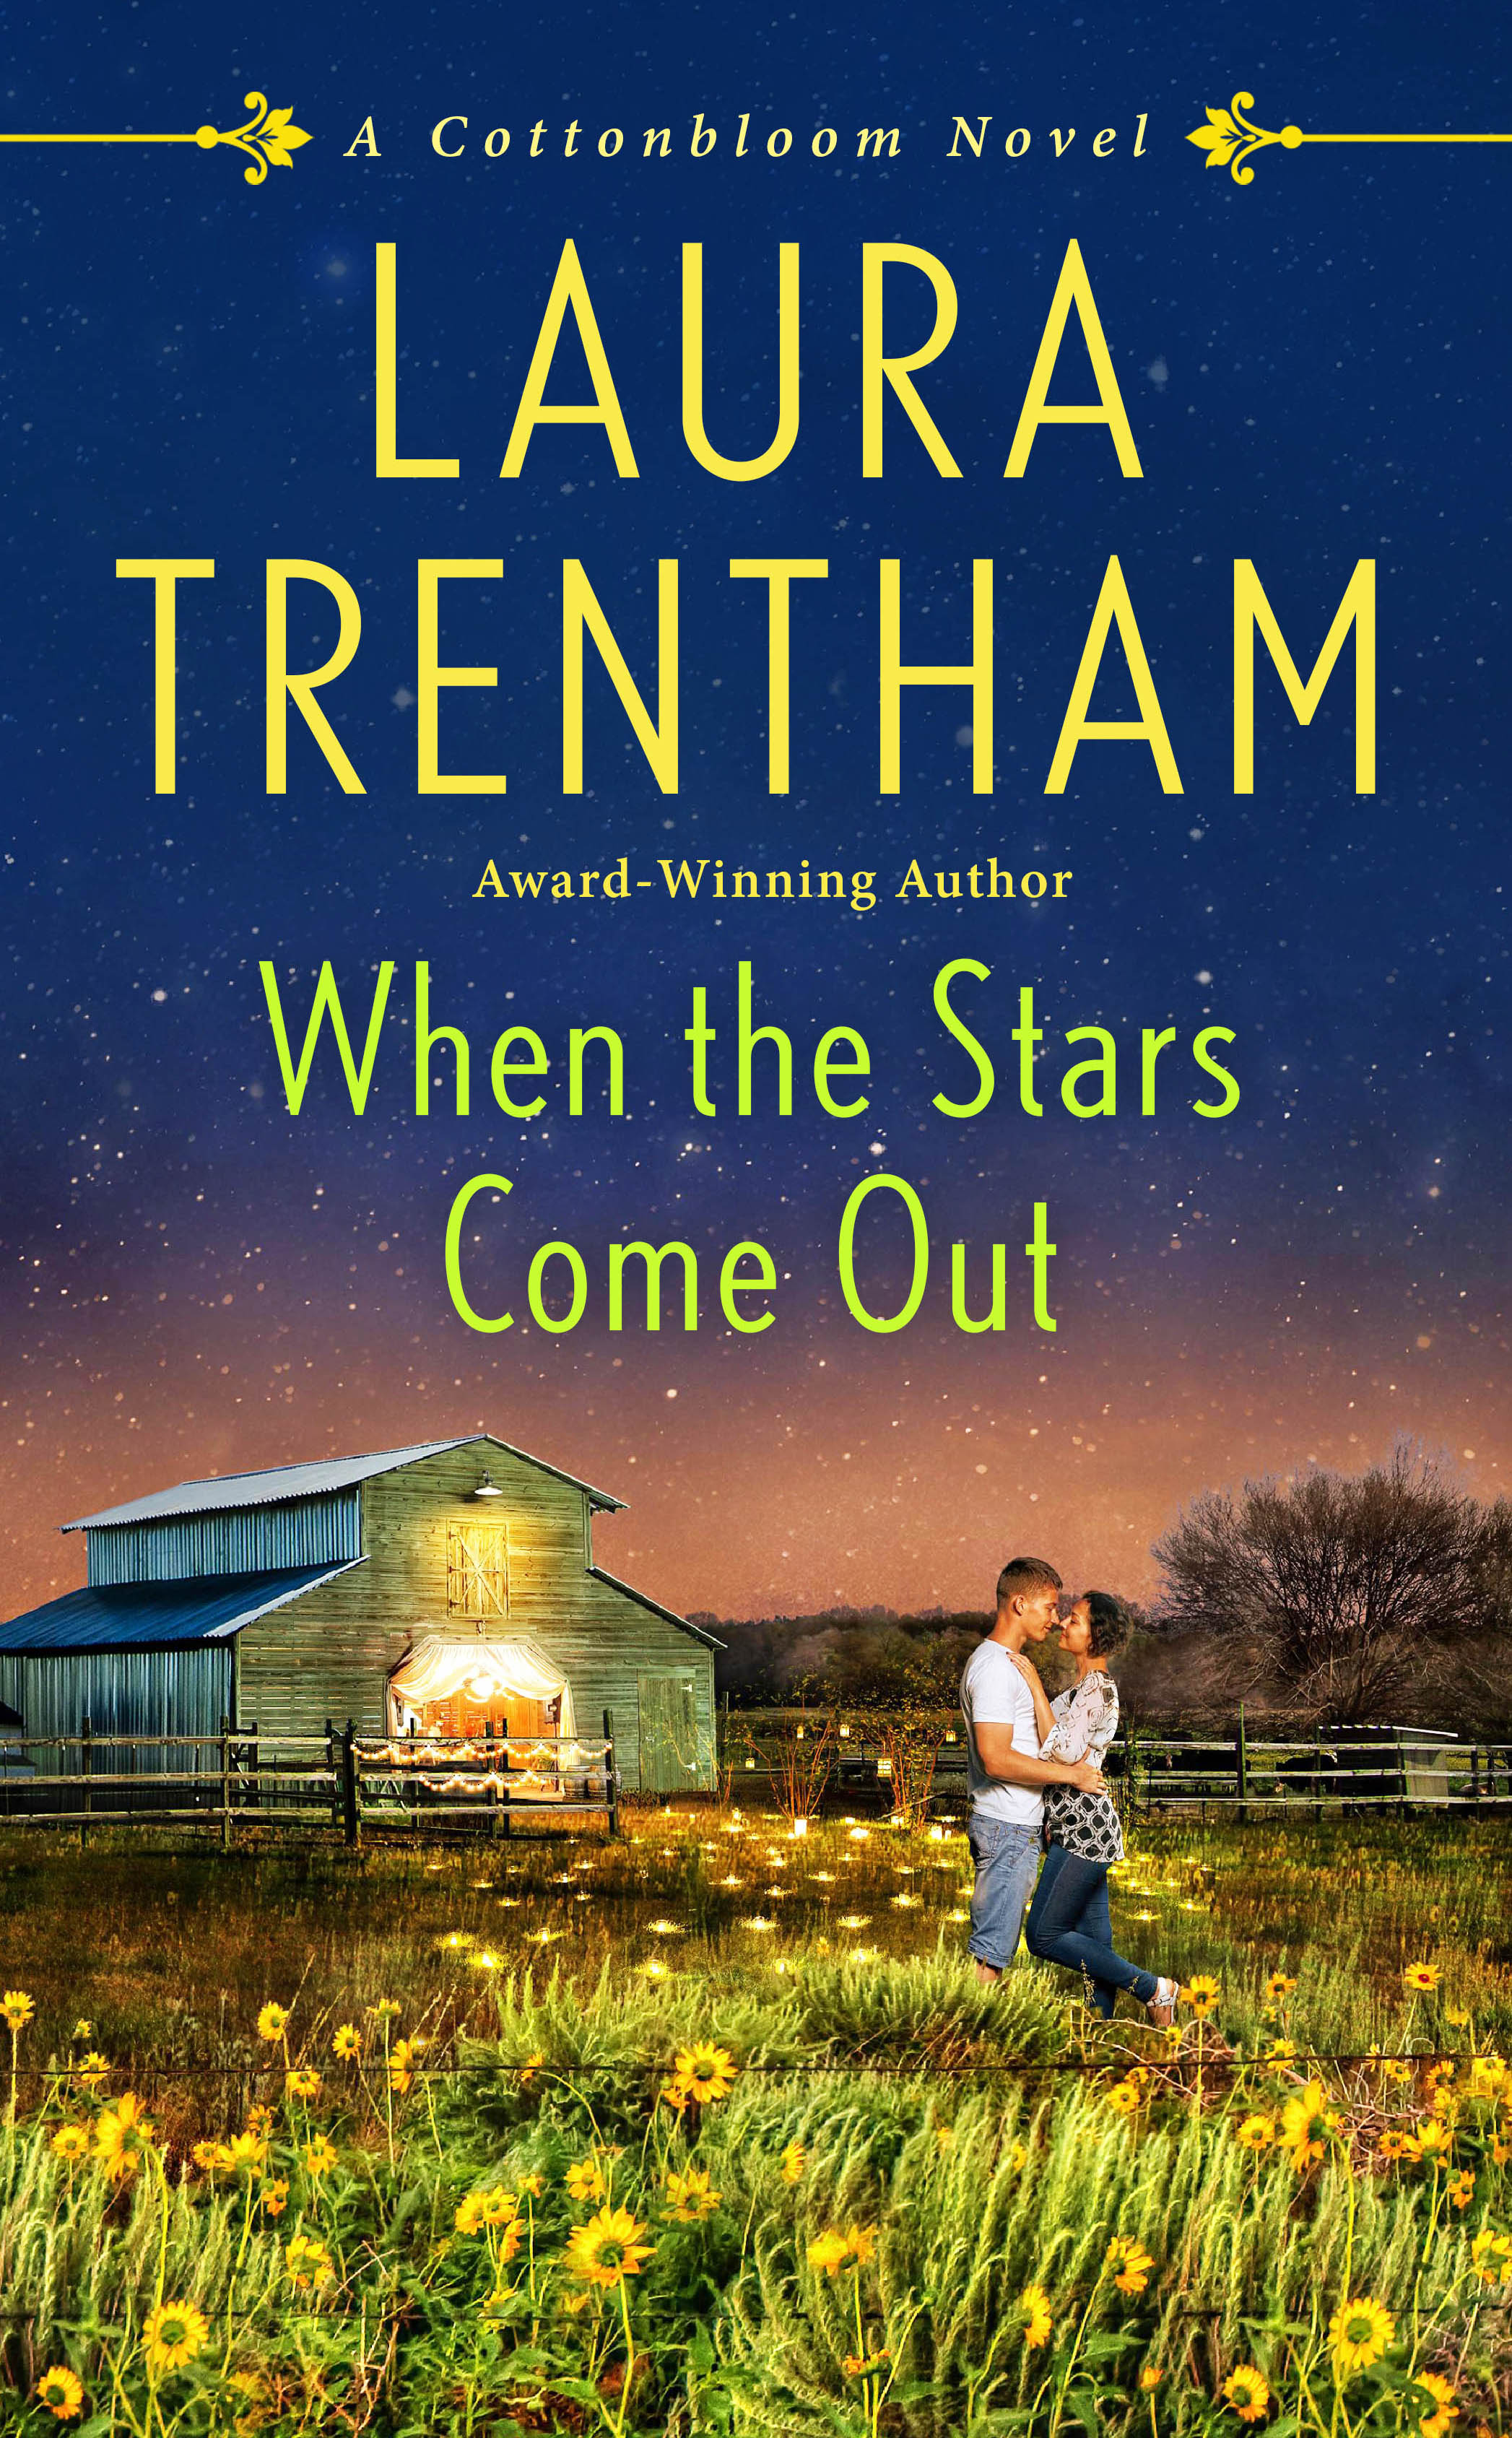 Blog Tour & Giveaway: When the Stars Come Out by Laura Trentham